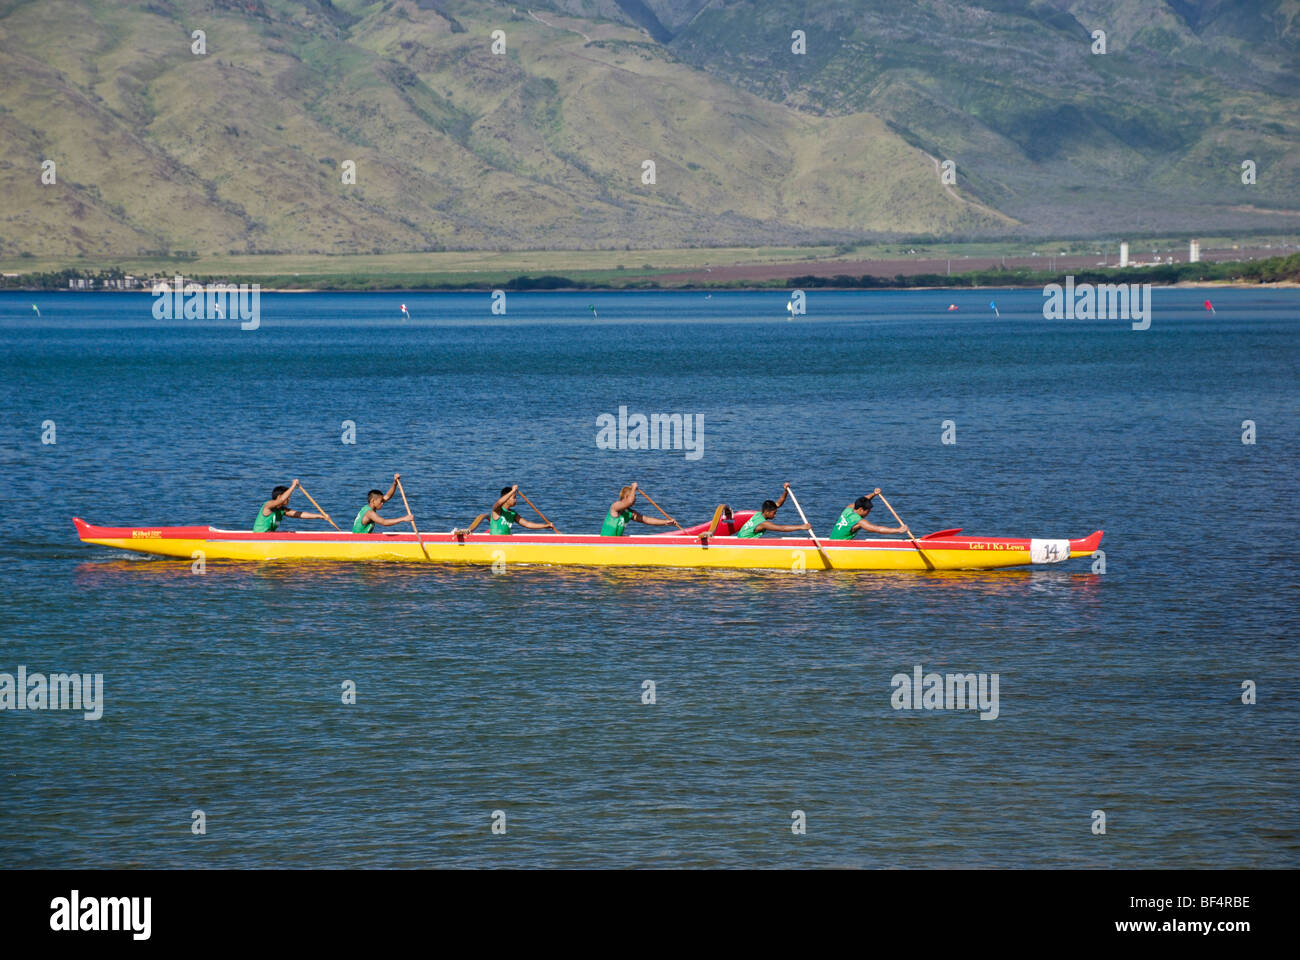 Outrigger canoe trials and competitions between local schools.  Taken from Kihei beach - Stock Image